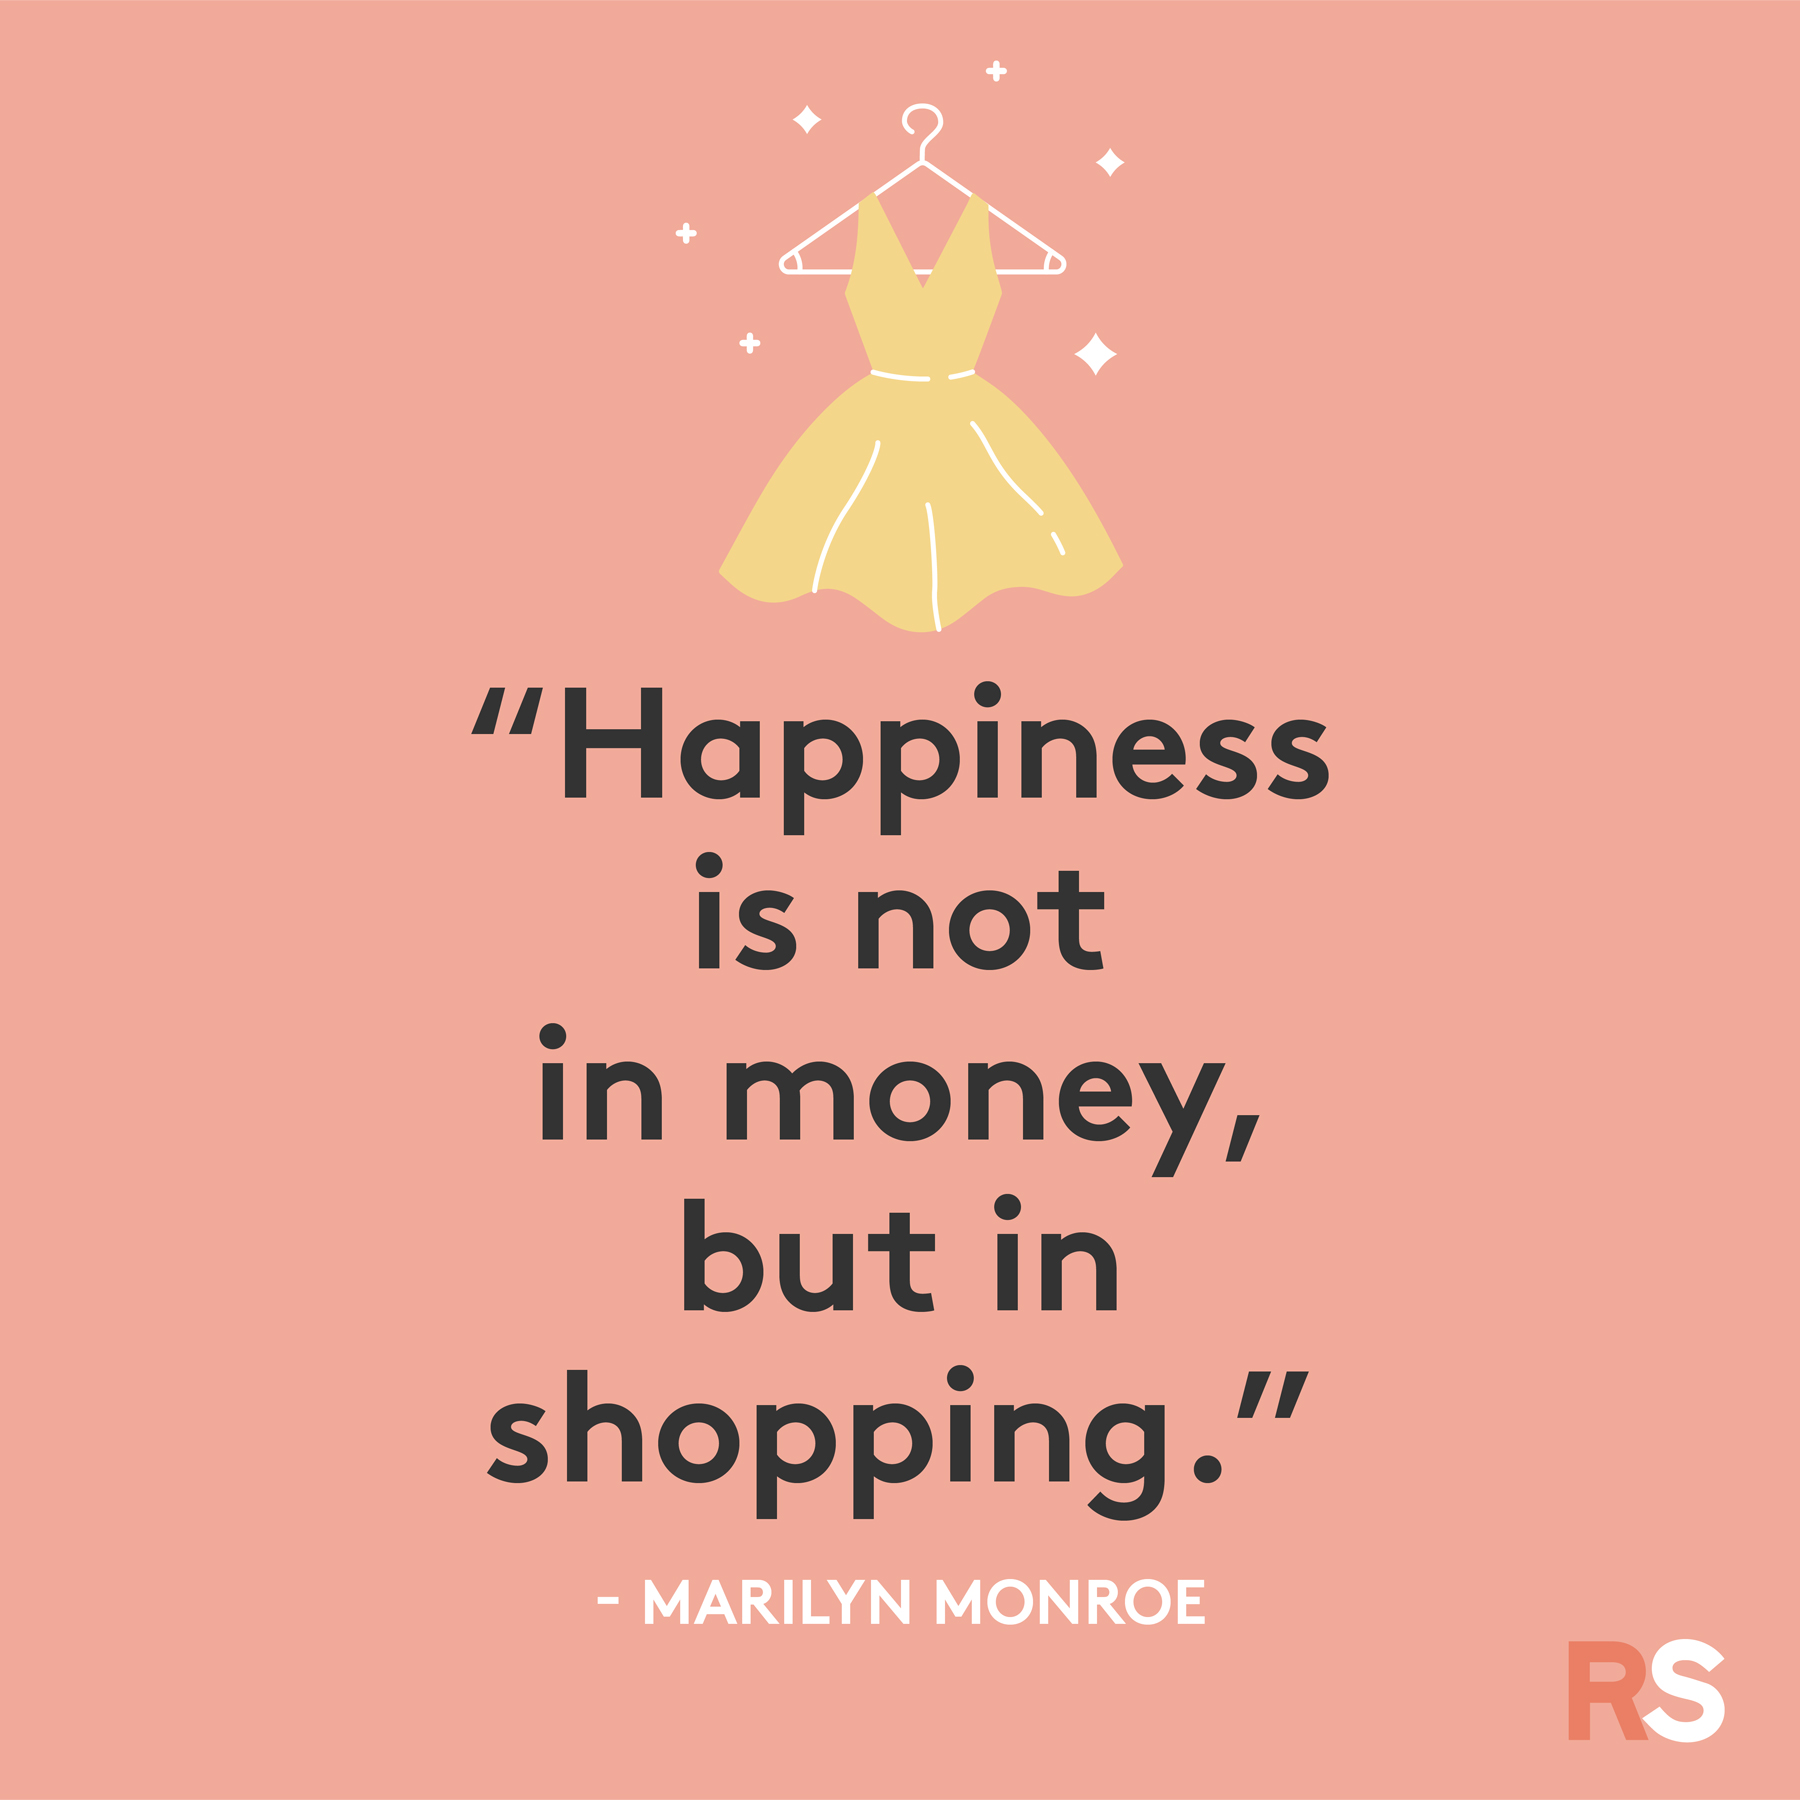 Black Friday funny quotes, sayings - Marilyn Monroe